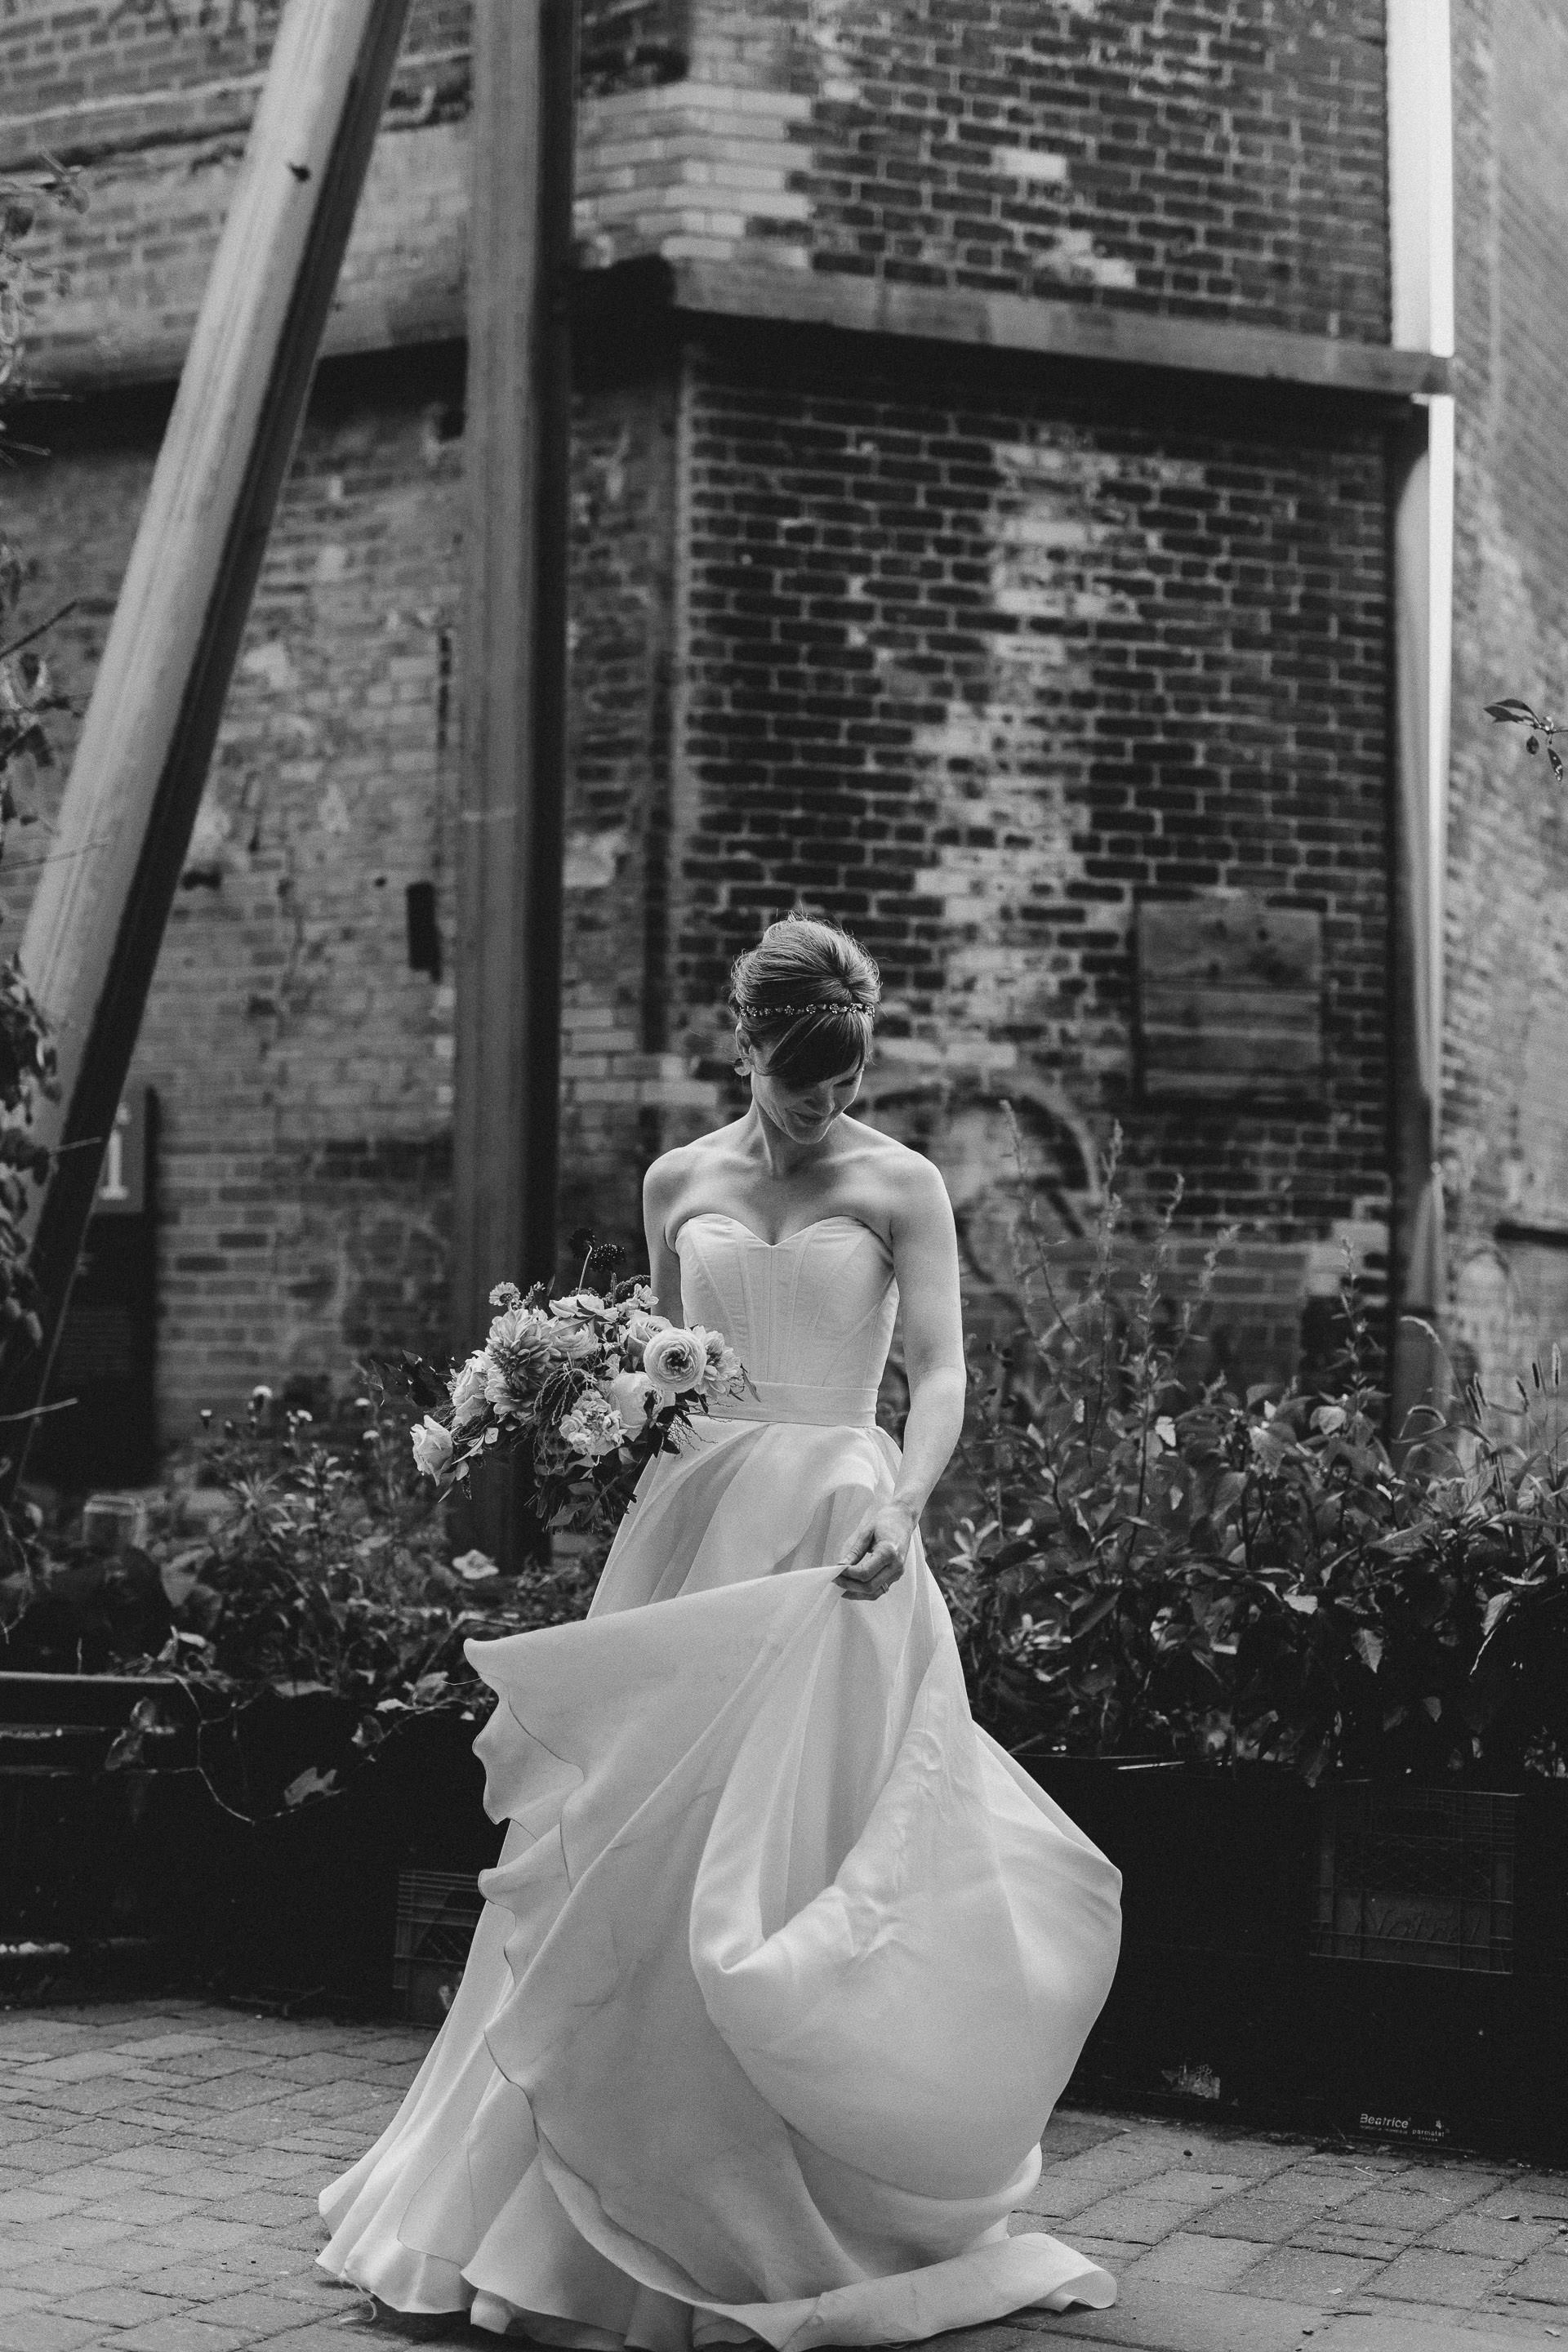 Evergreen Brickworks wedding photographer - portrait of the bride